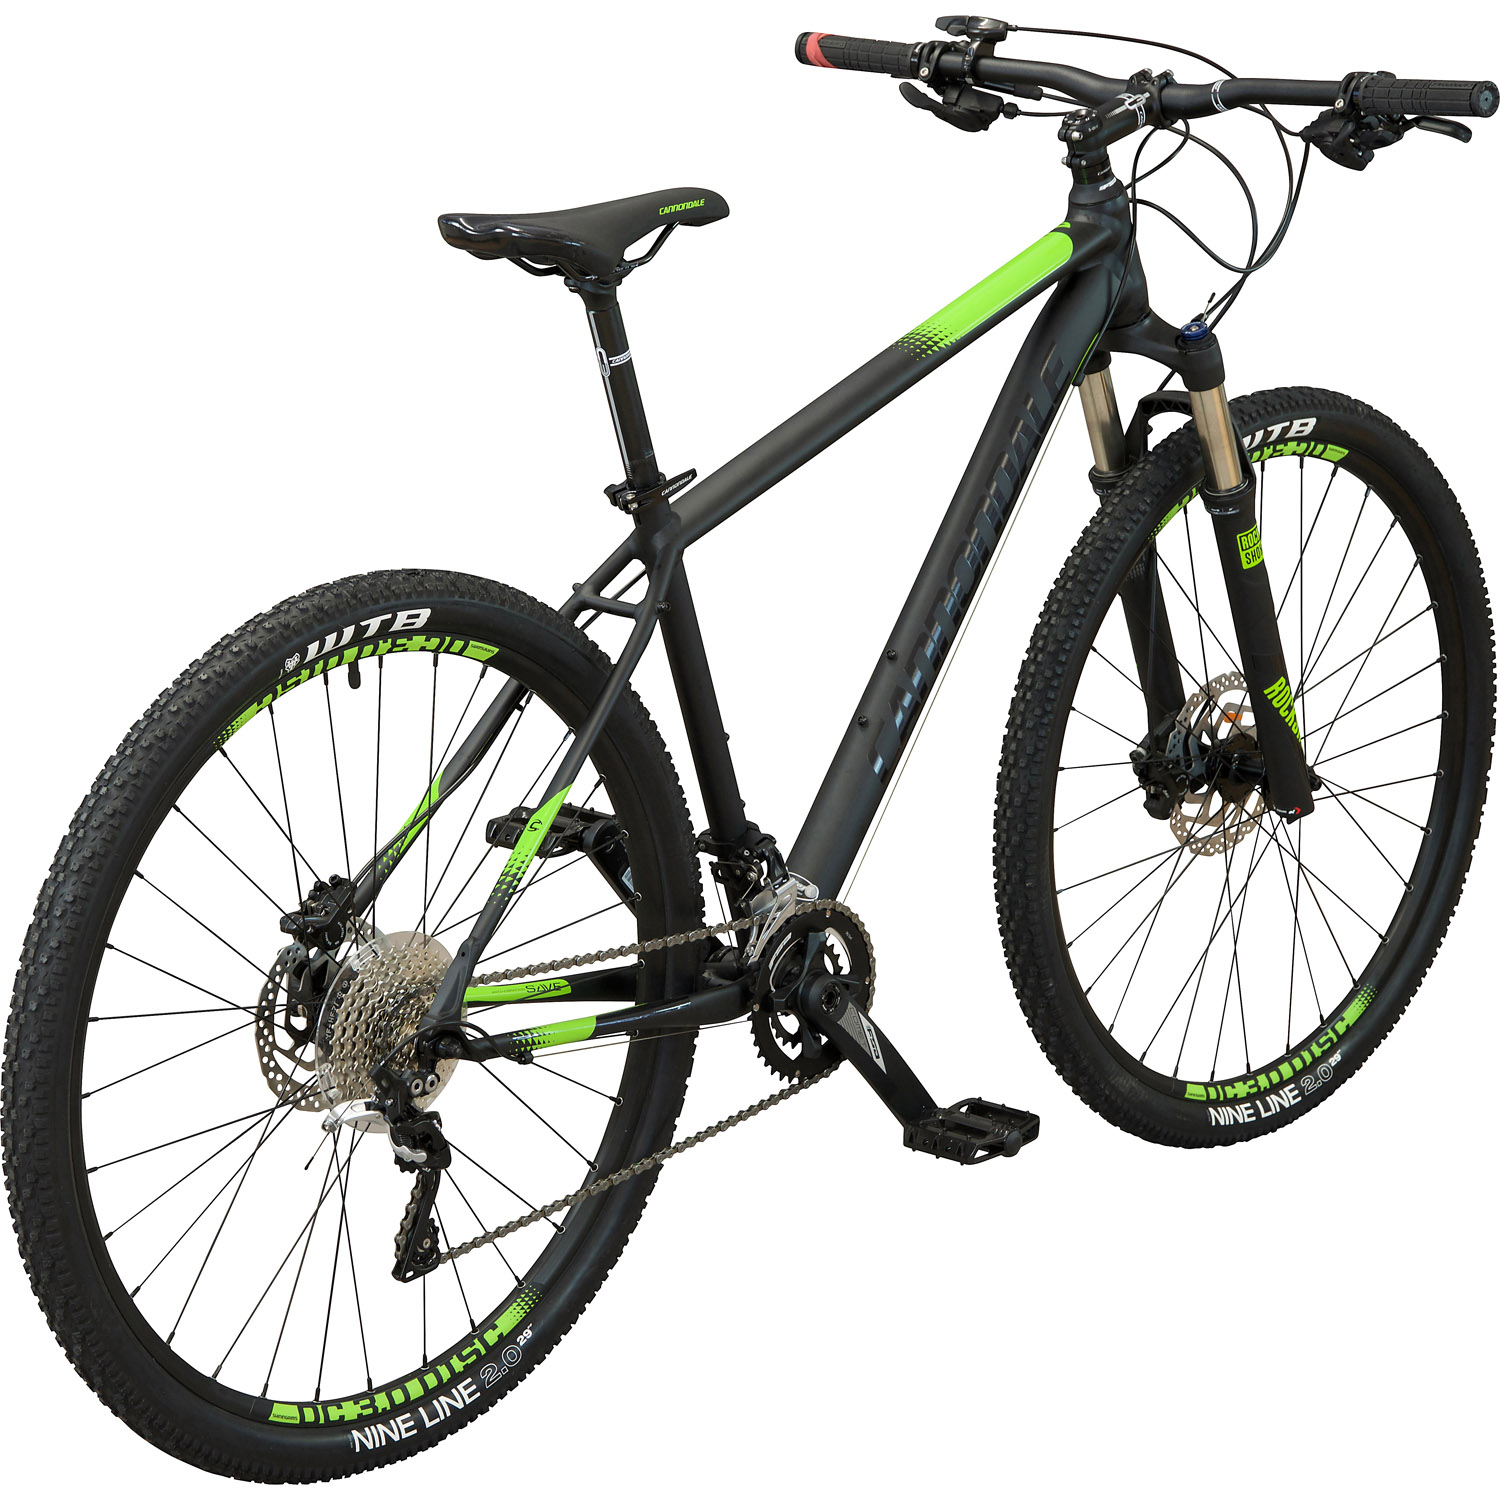 cannondale trail 2 hardtail 29 zoll mountainbike m 44 cm. Black Bedroom Furniture Sets. Home Design Ideas